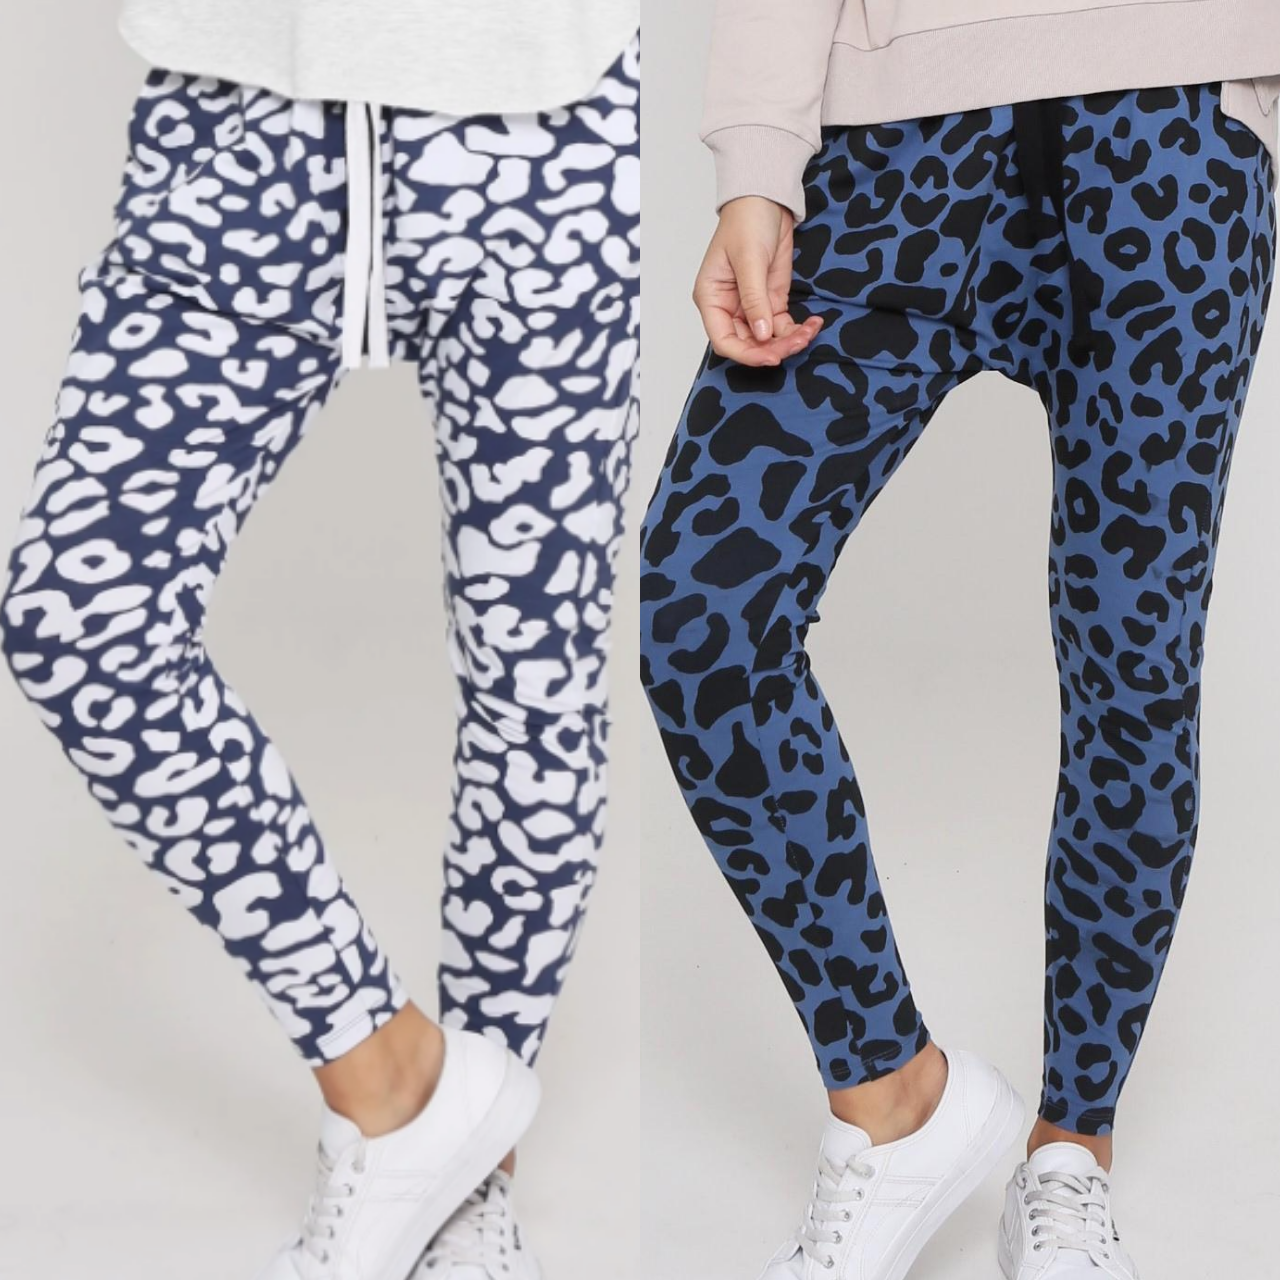 Jogger Two Pair Bundle -  Mila Ink Leopard and Mila Blue Denim Leopard